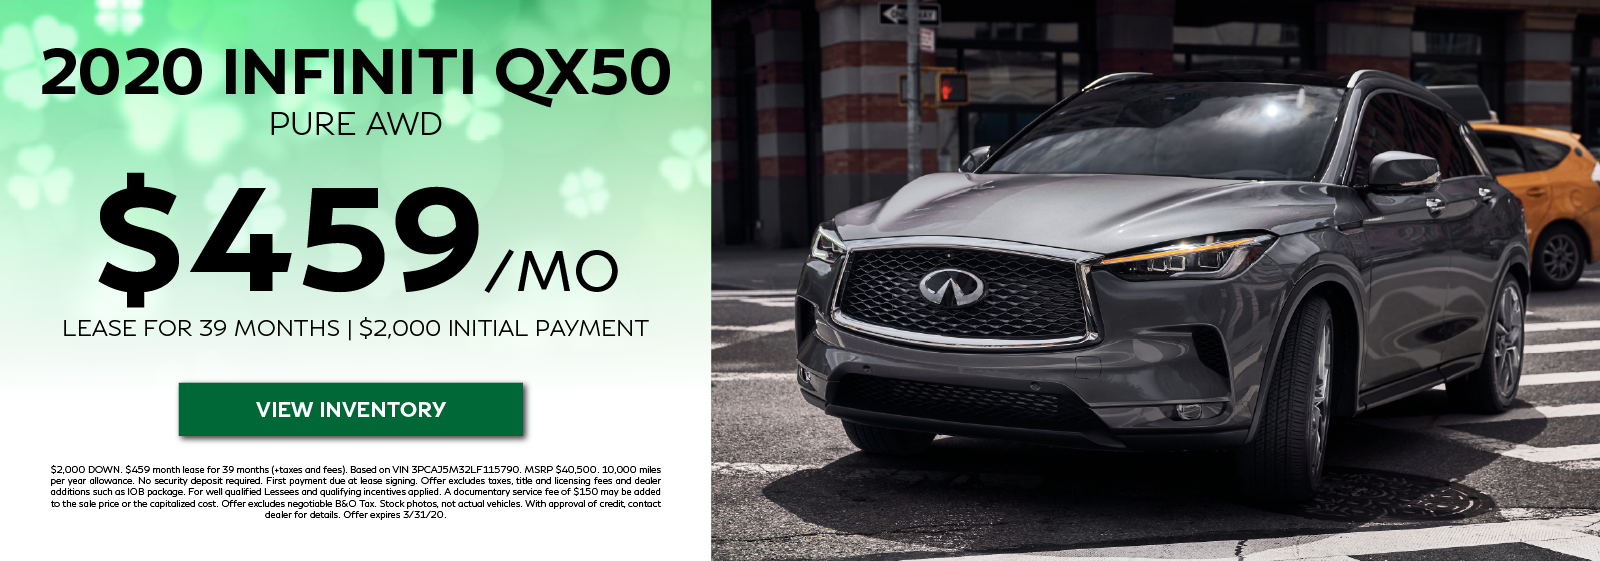 2020 QX50 LUXE - Lease for $459 per month for 39 months. View Inventory